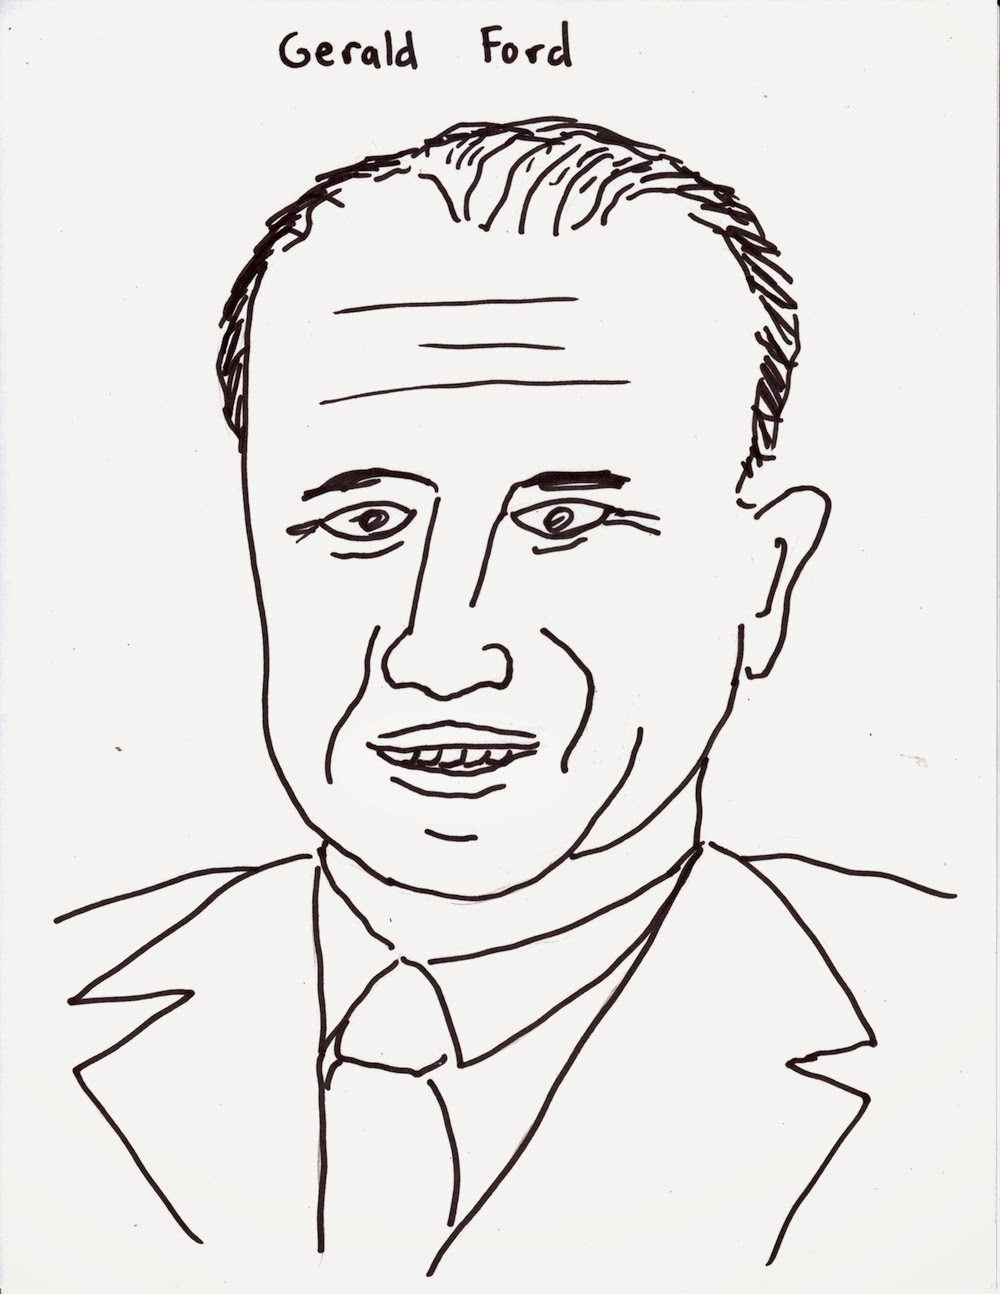 coloring pages of gerald ford - photo#10